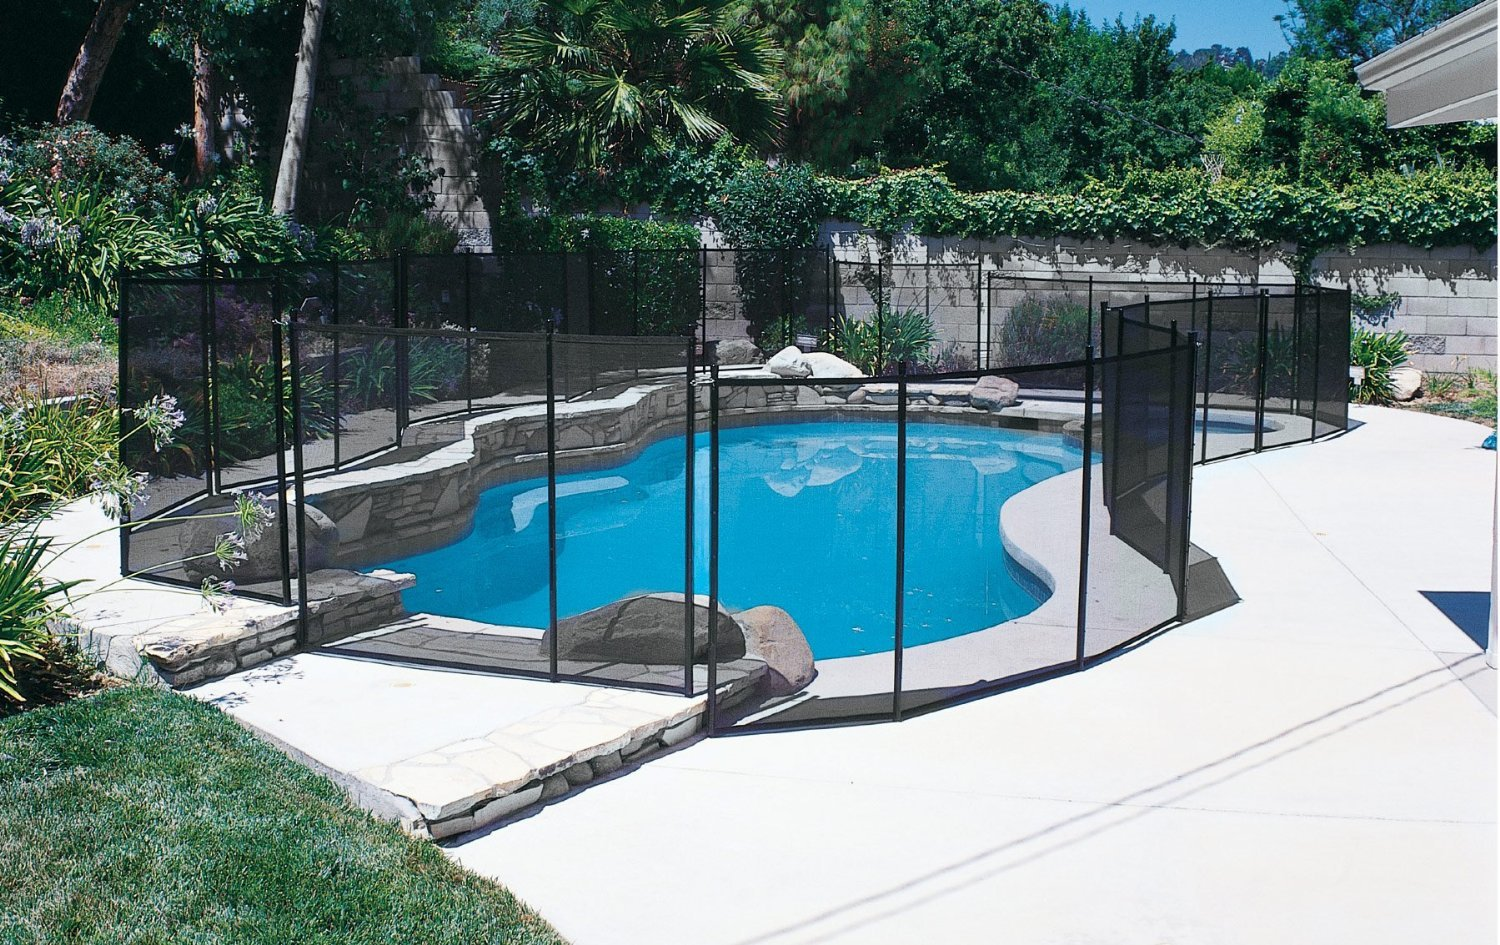 Amazon.com : Pool Safety Fence GLI 5 ft. X 10 ft. 30-0510 ...